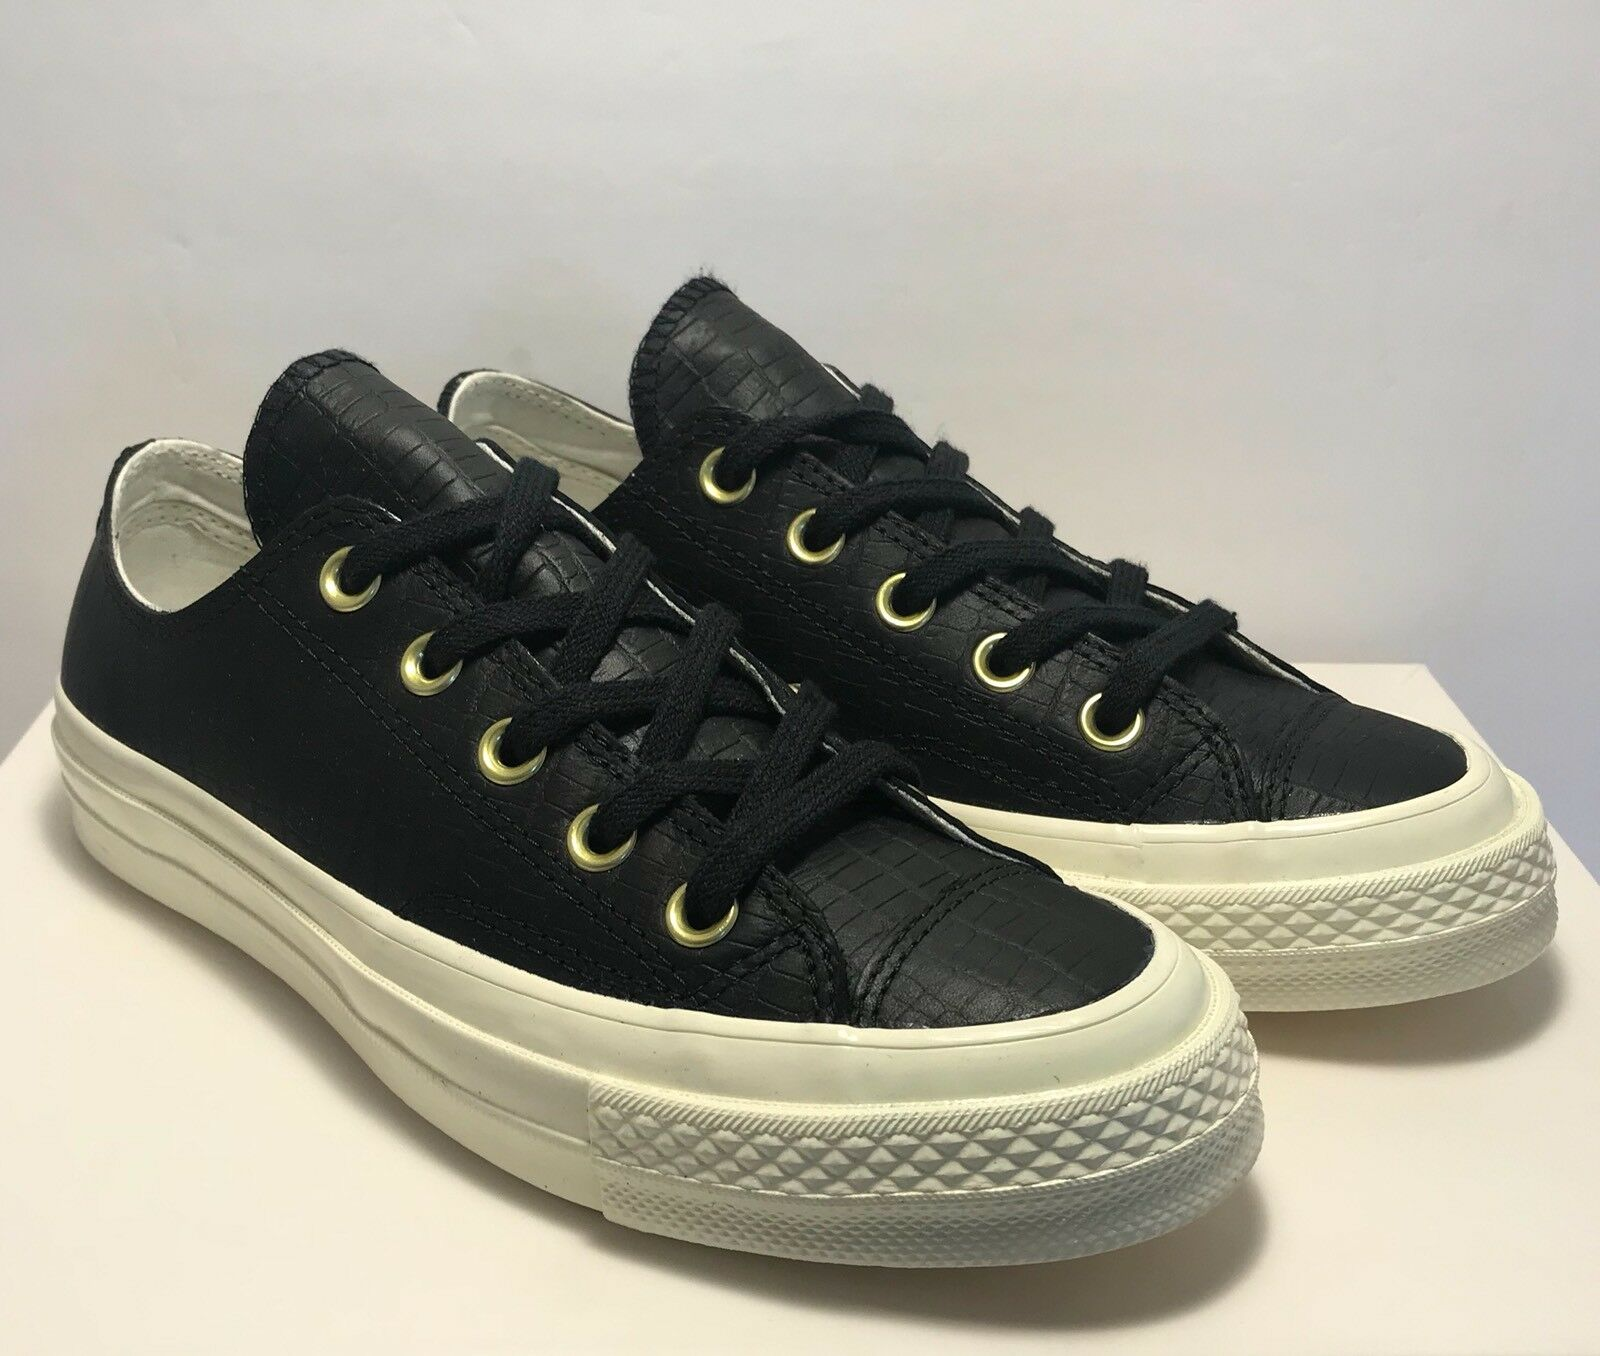 Converse Womens Size 7 First String CTAS 70 Reptile 1970 Black Leather shoes